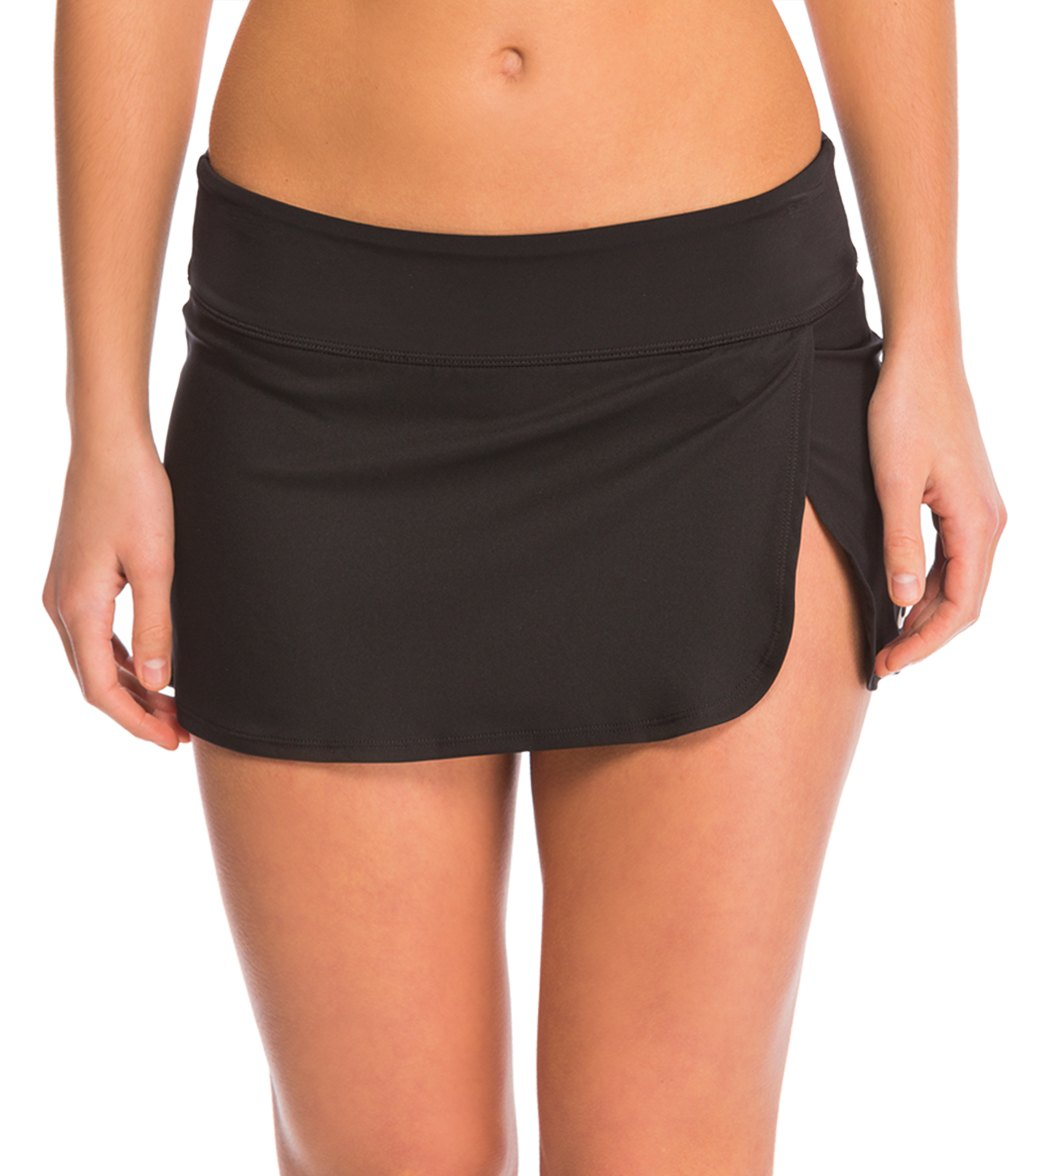 272d20093fe2d Nike Women s Core Solid Swim Skirt at SwimOutlet.com - Free Shipping